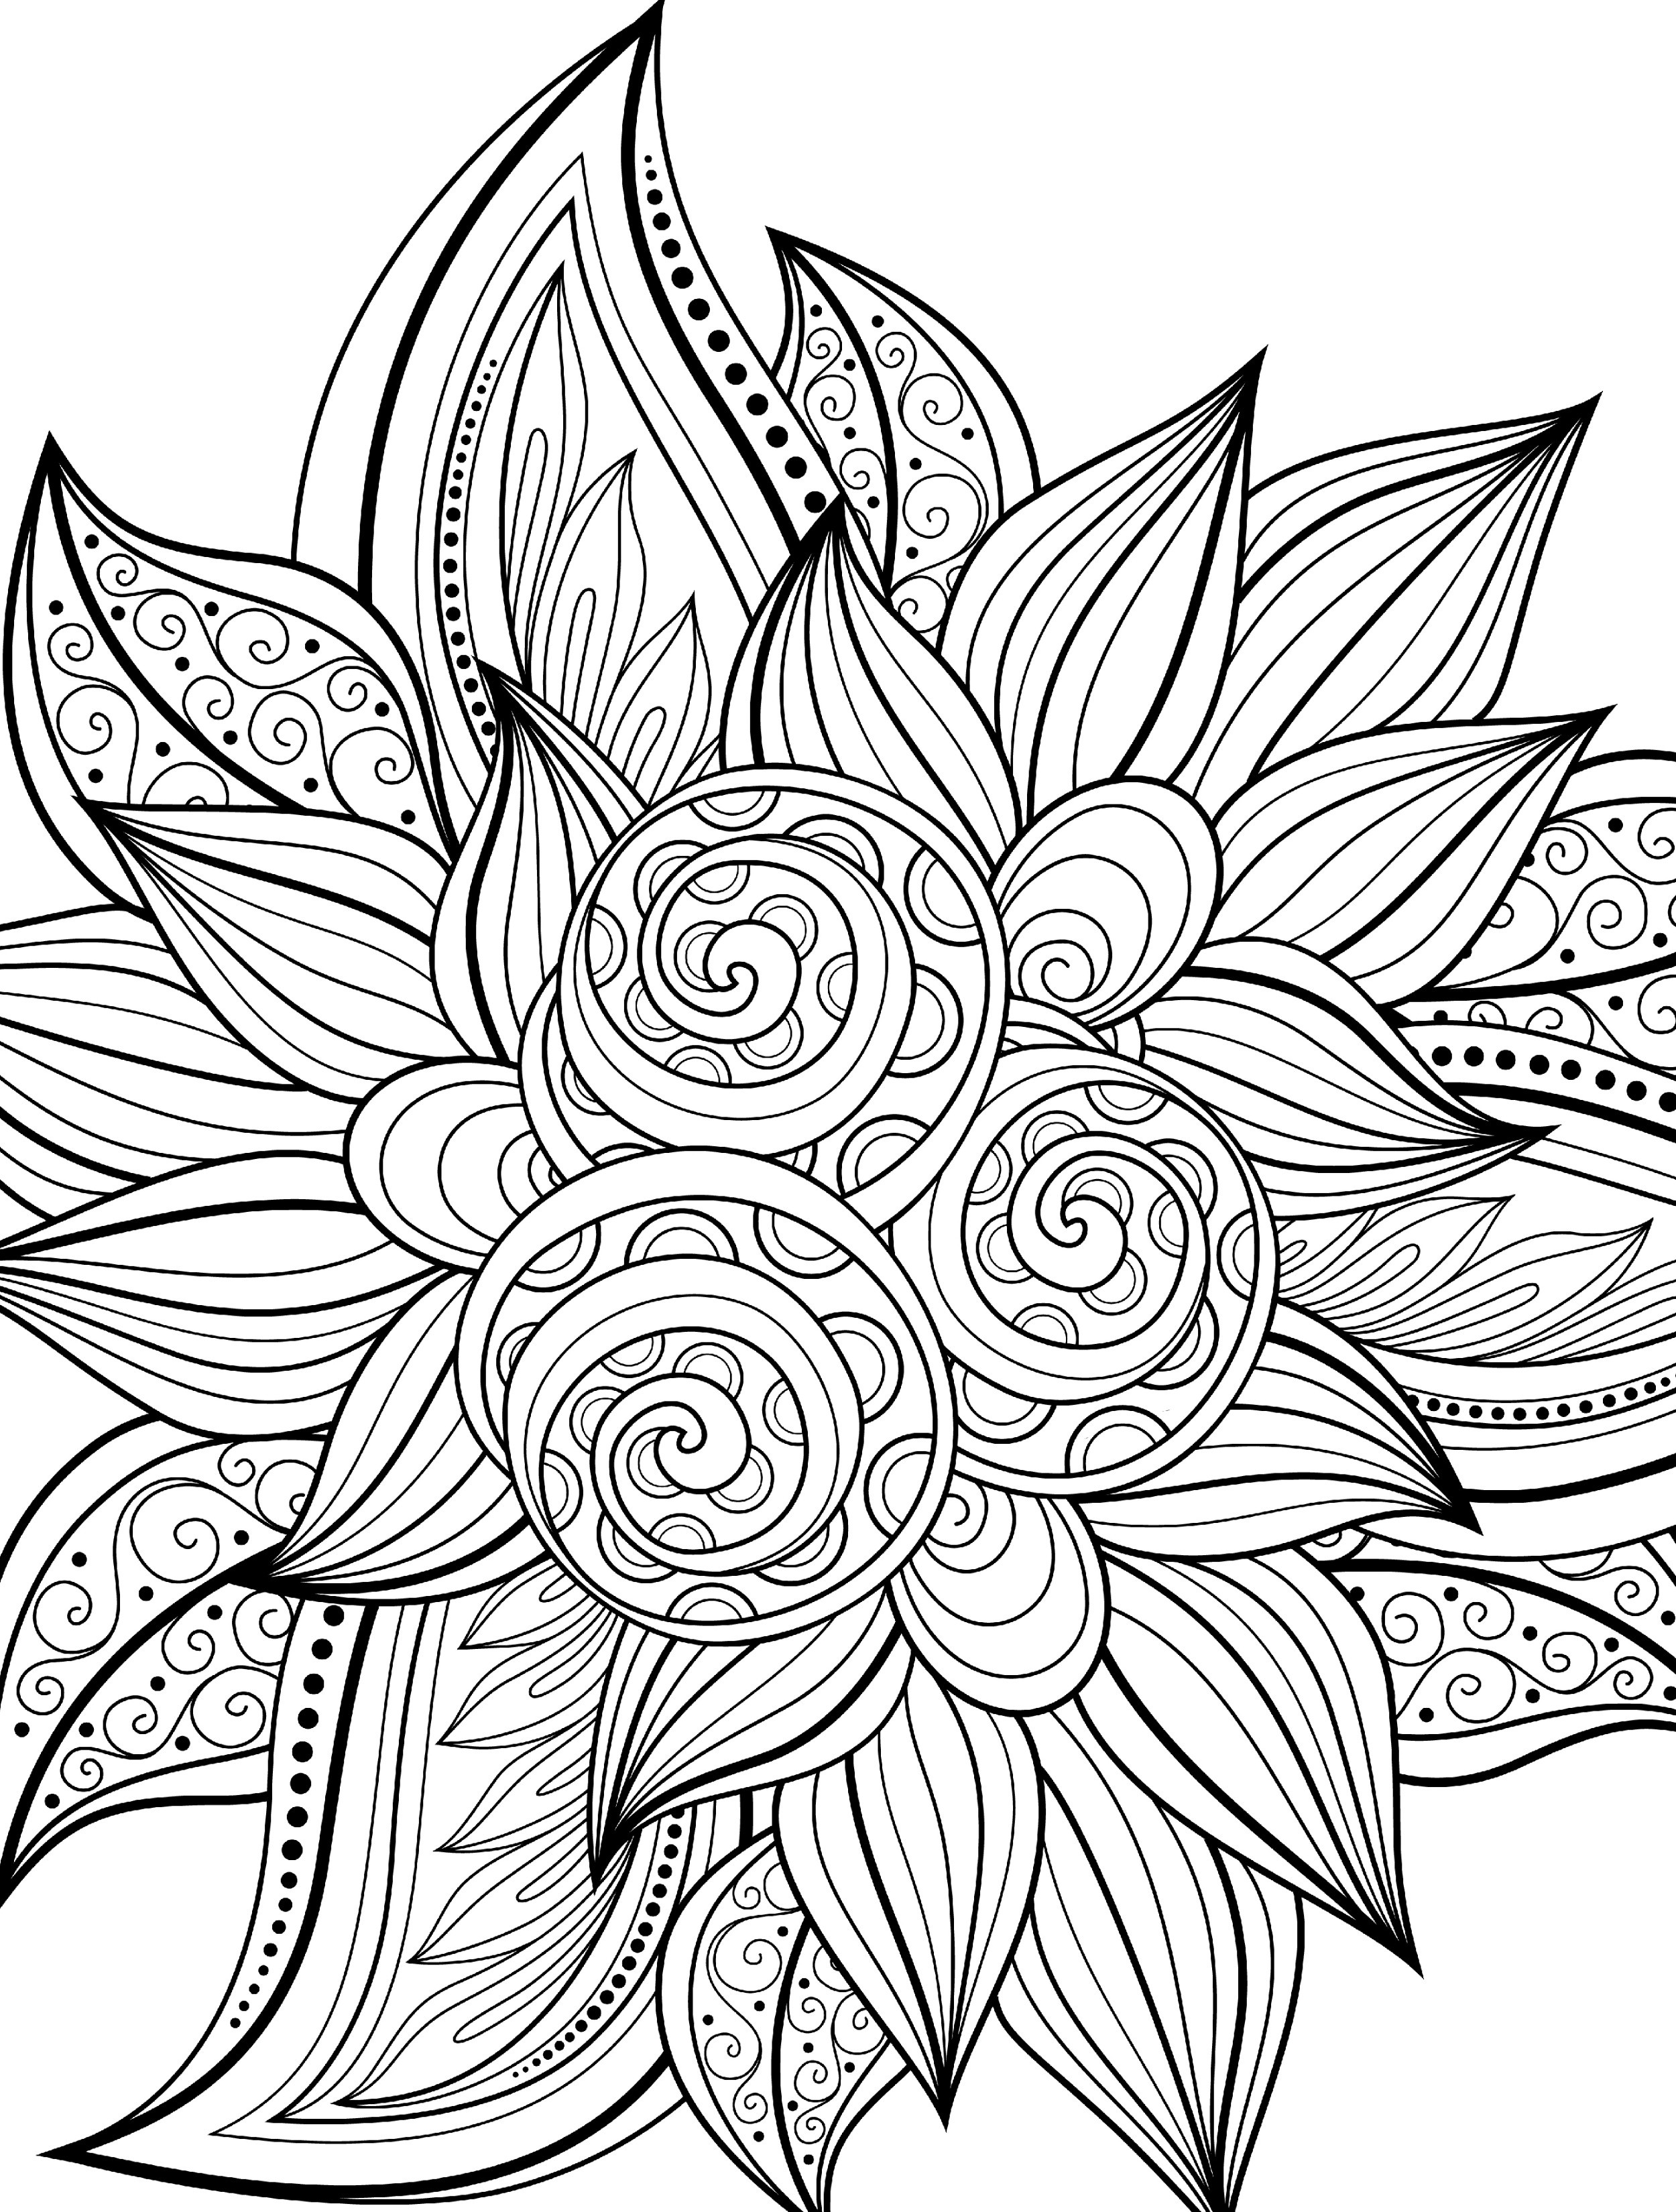 Best ideas about Easy Printable Coloring Pages For Adults . Save or Pin 10 Free Printable Holiday Adult Coloring Pages Now.